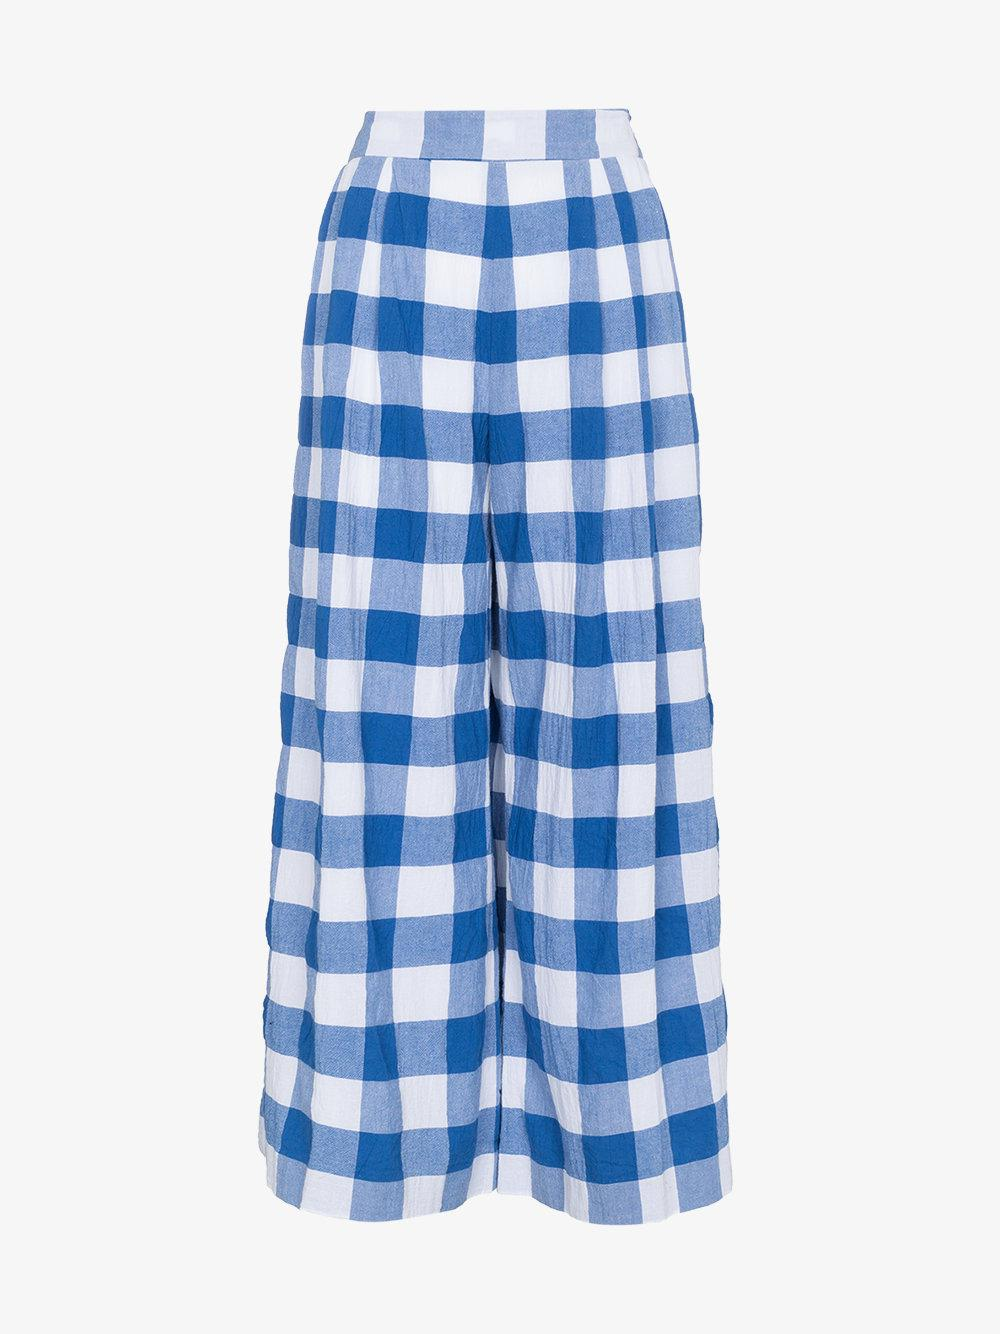 Pre Order Cheap Price Mara Hoffman Angie high waist check organic cotton trousers The Cheapest Online Original Online Buy Cheap Deals 9bKk6tB